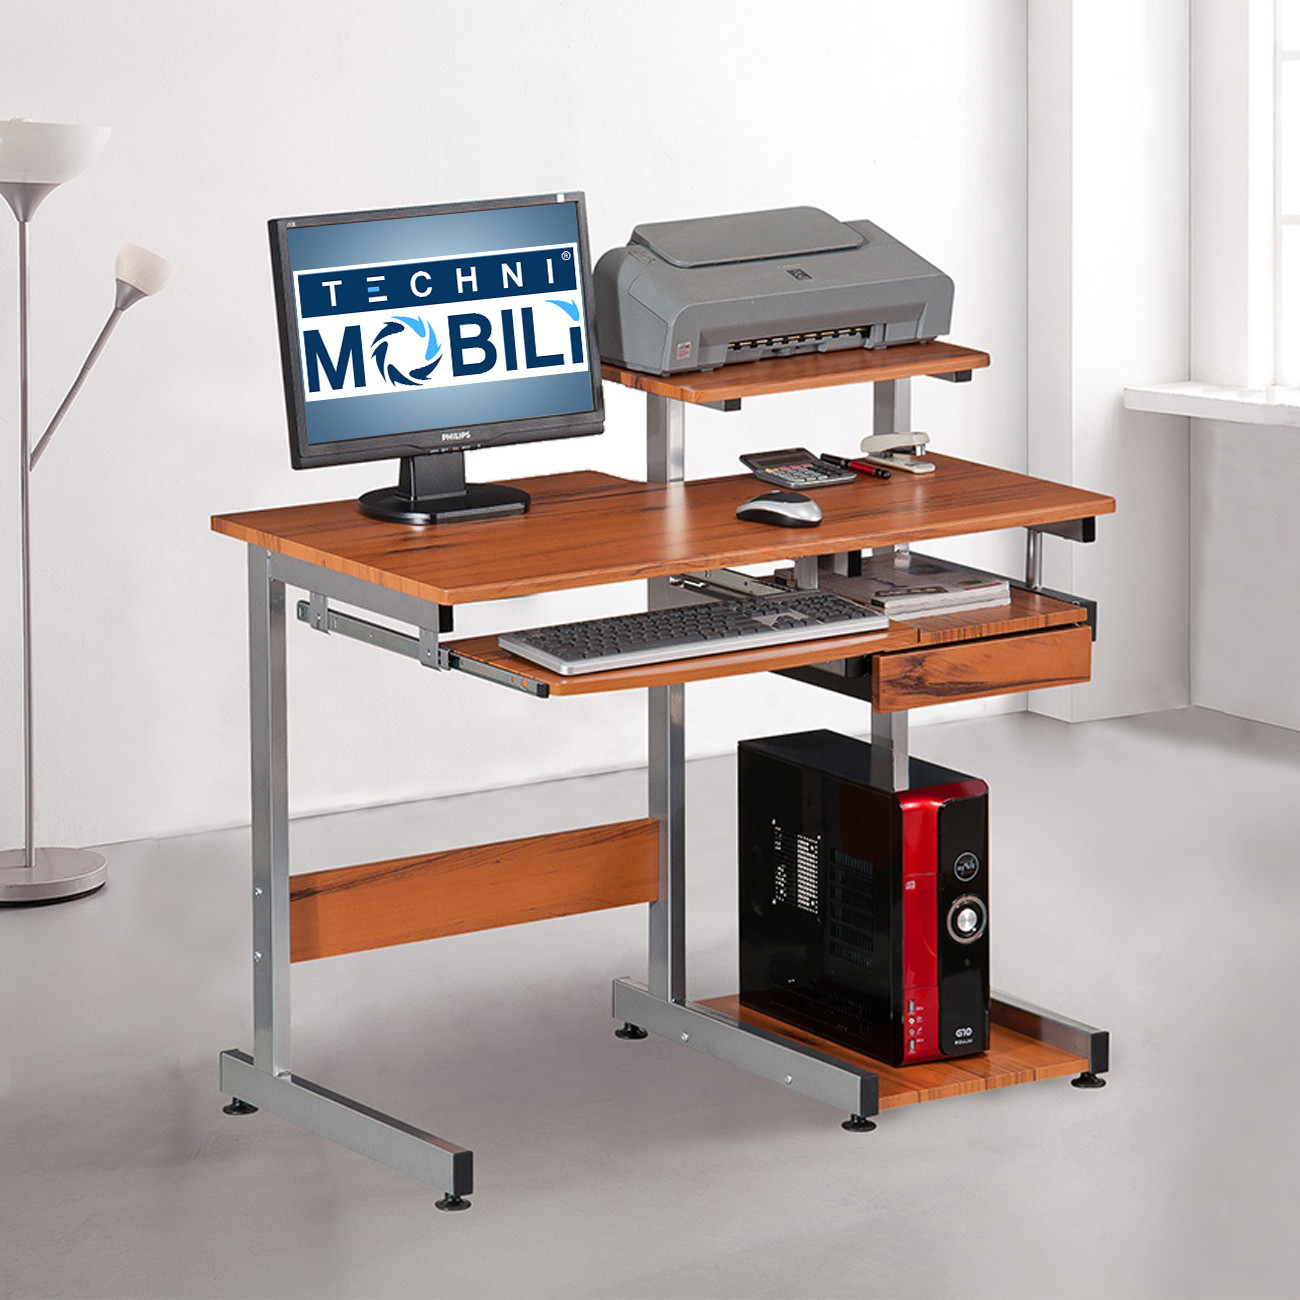 Image of: Compact Computer Desk Models